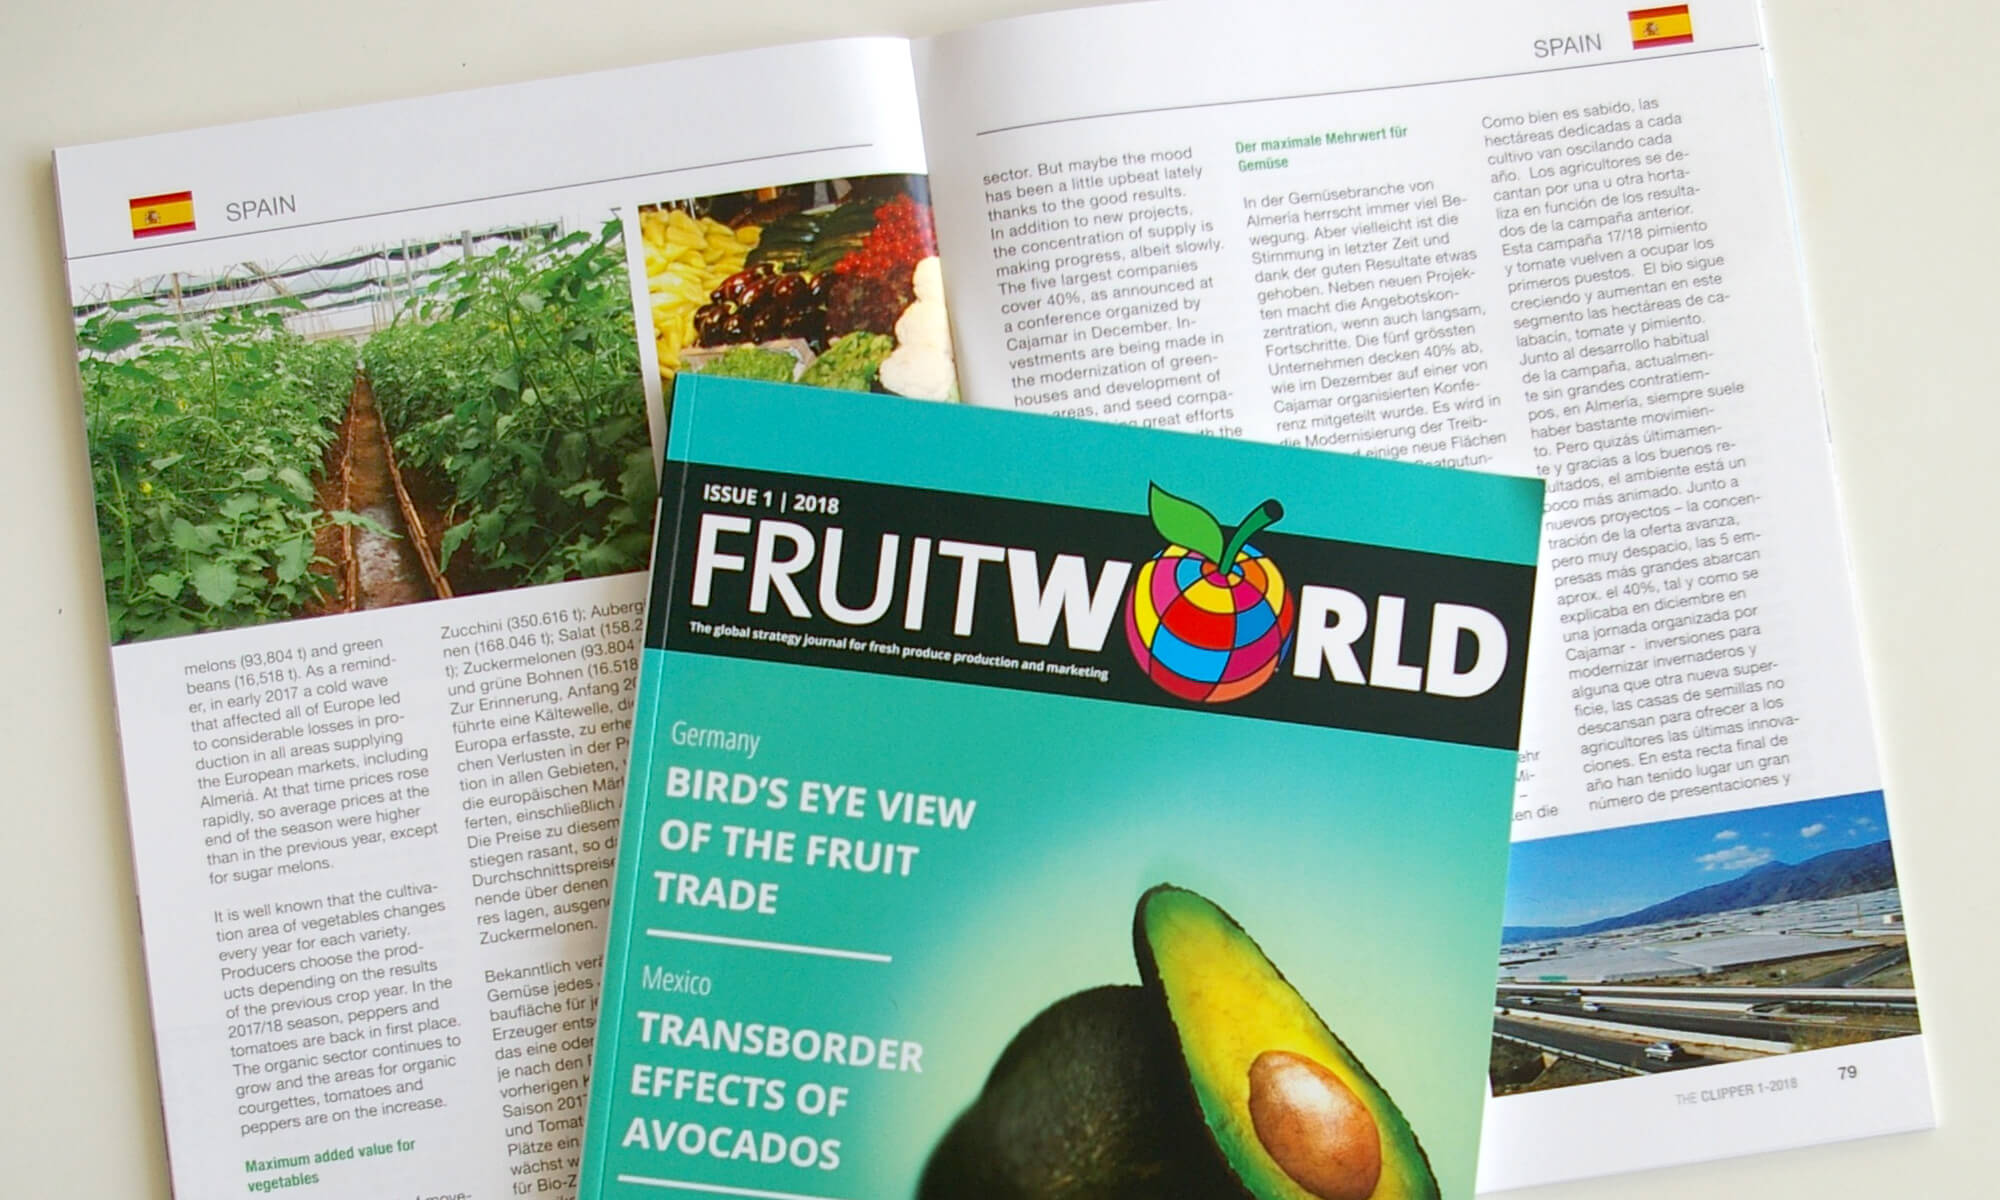 The Fruitworld 1-2018